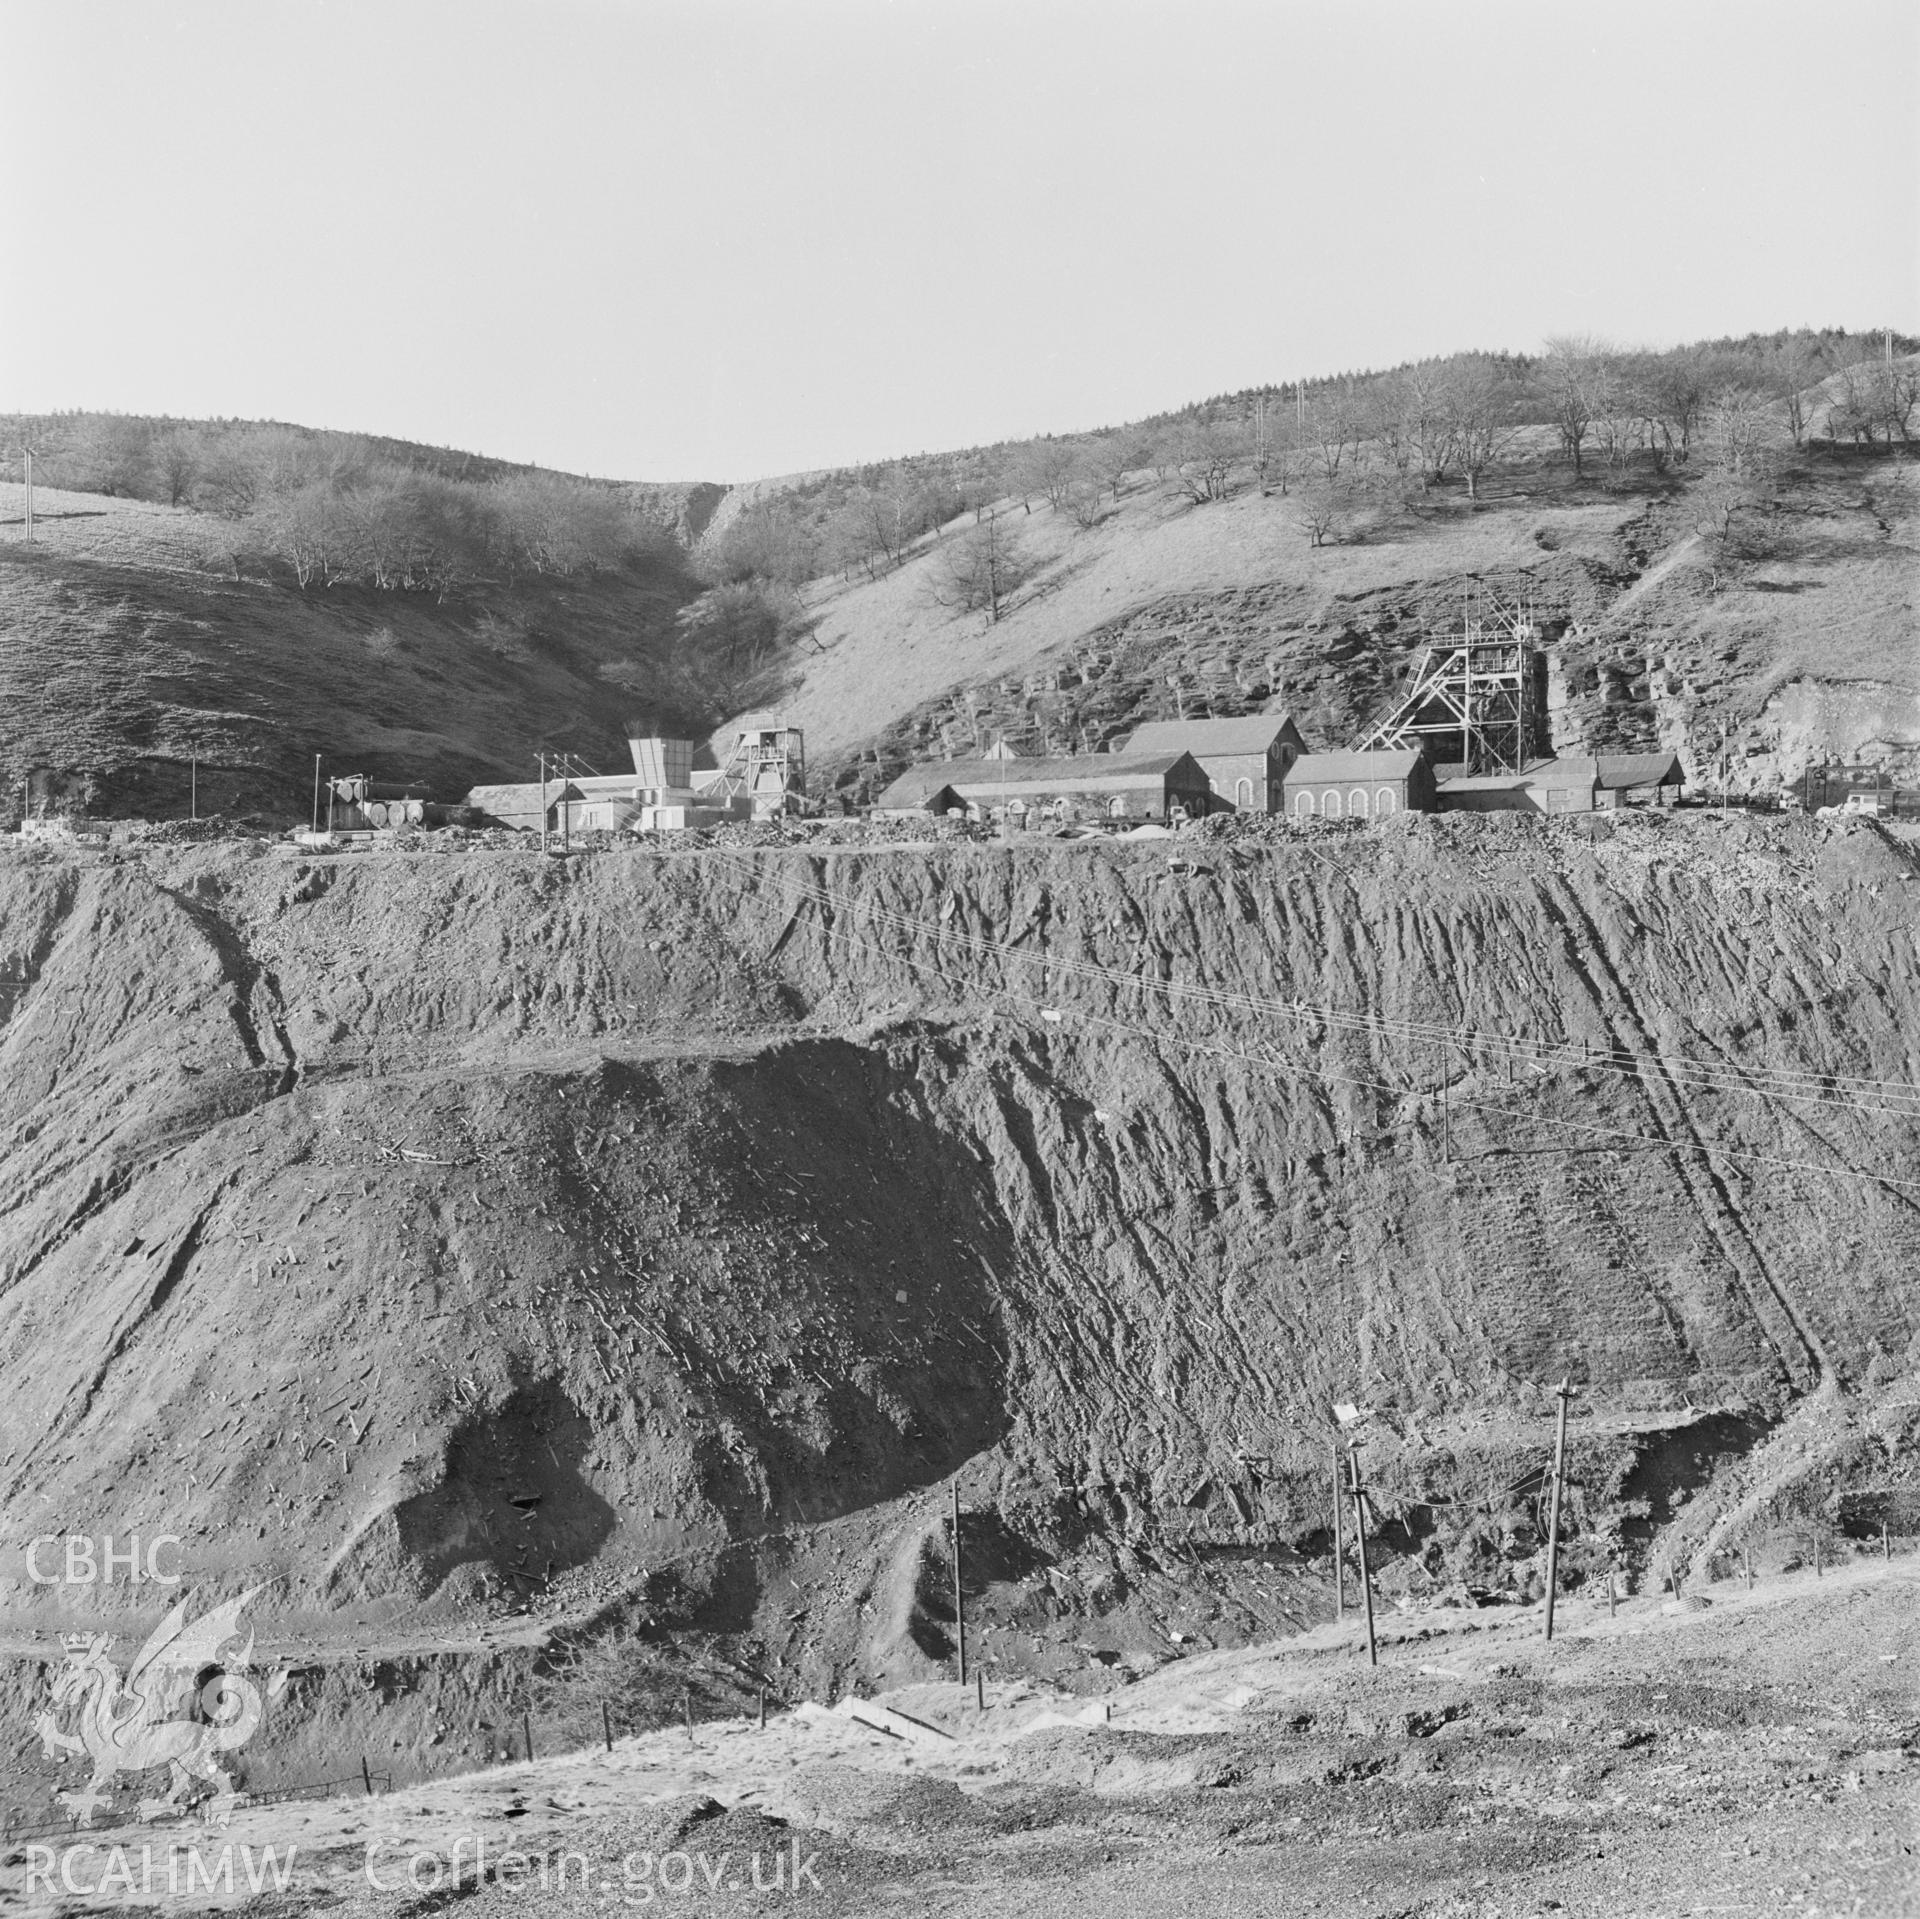 Digital copy of an acetate negative showing Blaenserchan Colliery - view across valley, from the John Cornwell Collection.